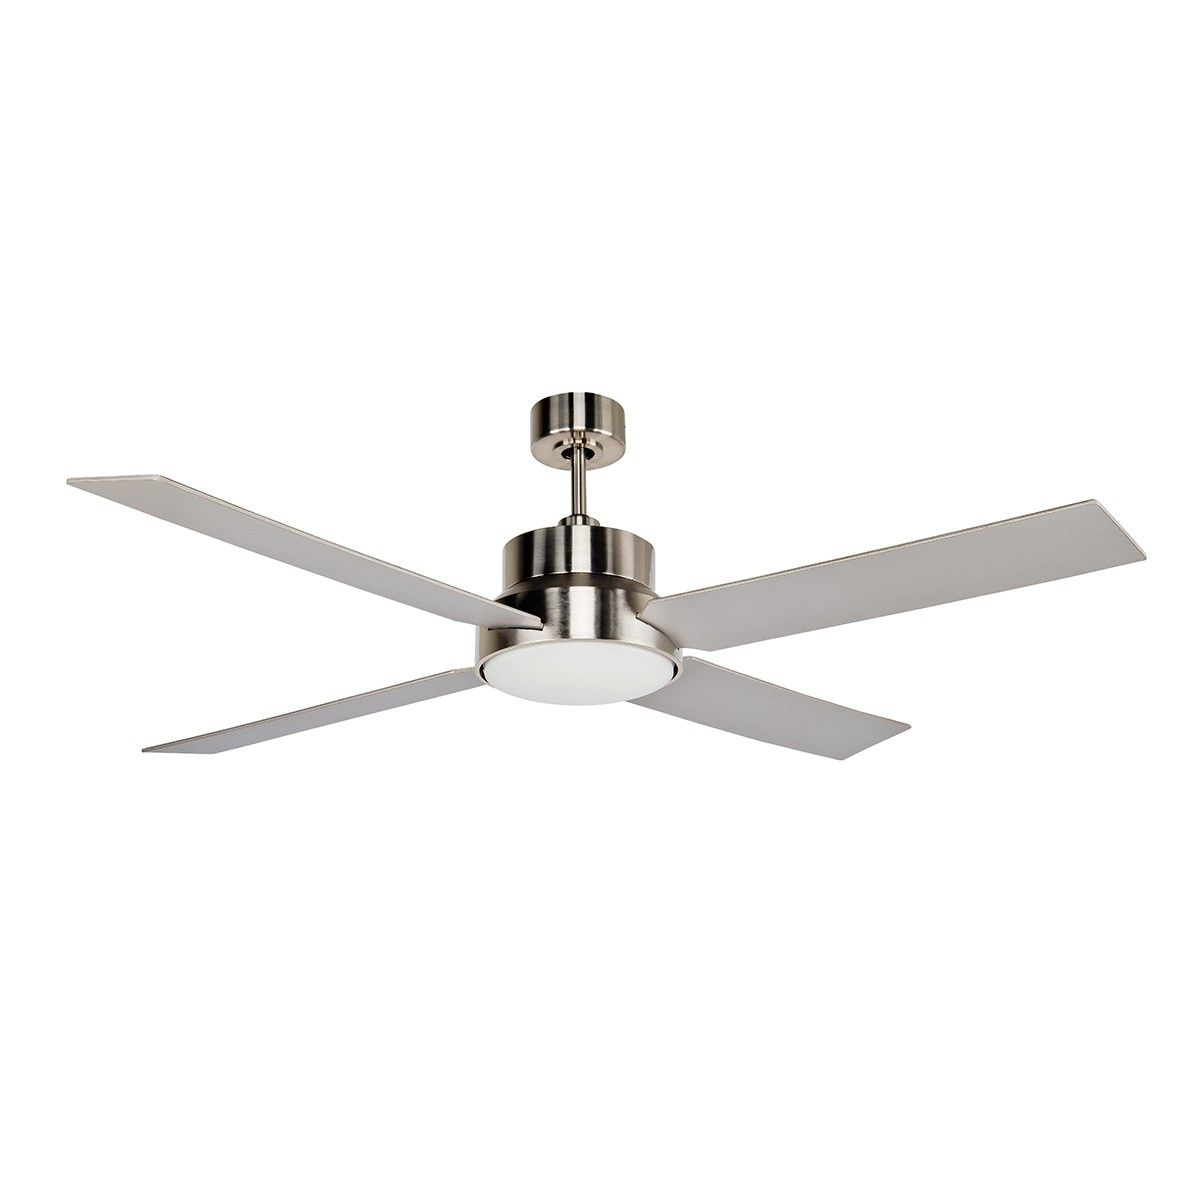 Dialogue Outdoor Ceiling Fan Outdoor Ceiling Fans Ceiling Fan Black Ceiling Fan